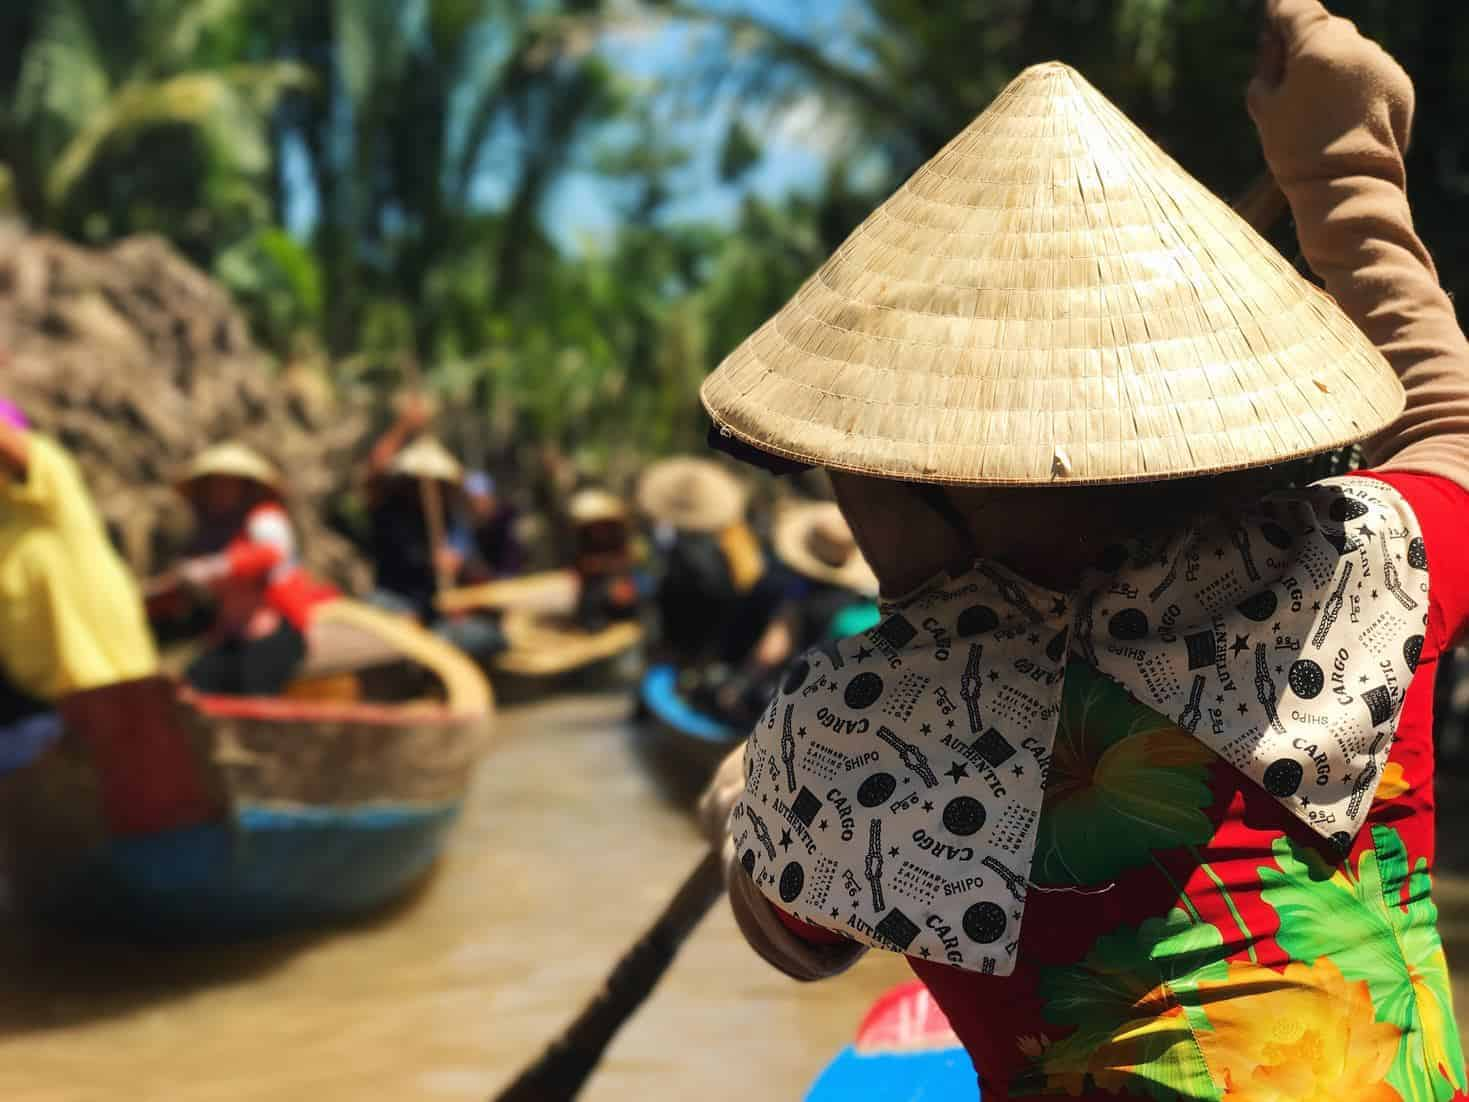 A Vietnamese lady rows towards other boats on the Mekong River. Photo by Anne Lin on Unsplash